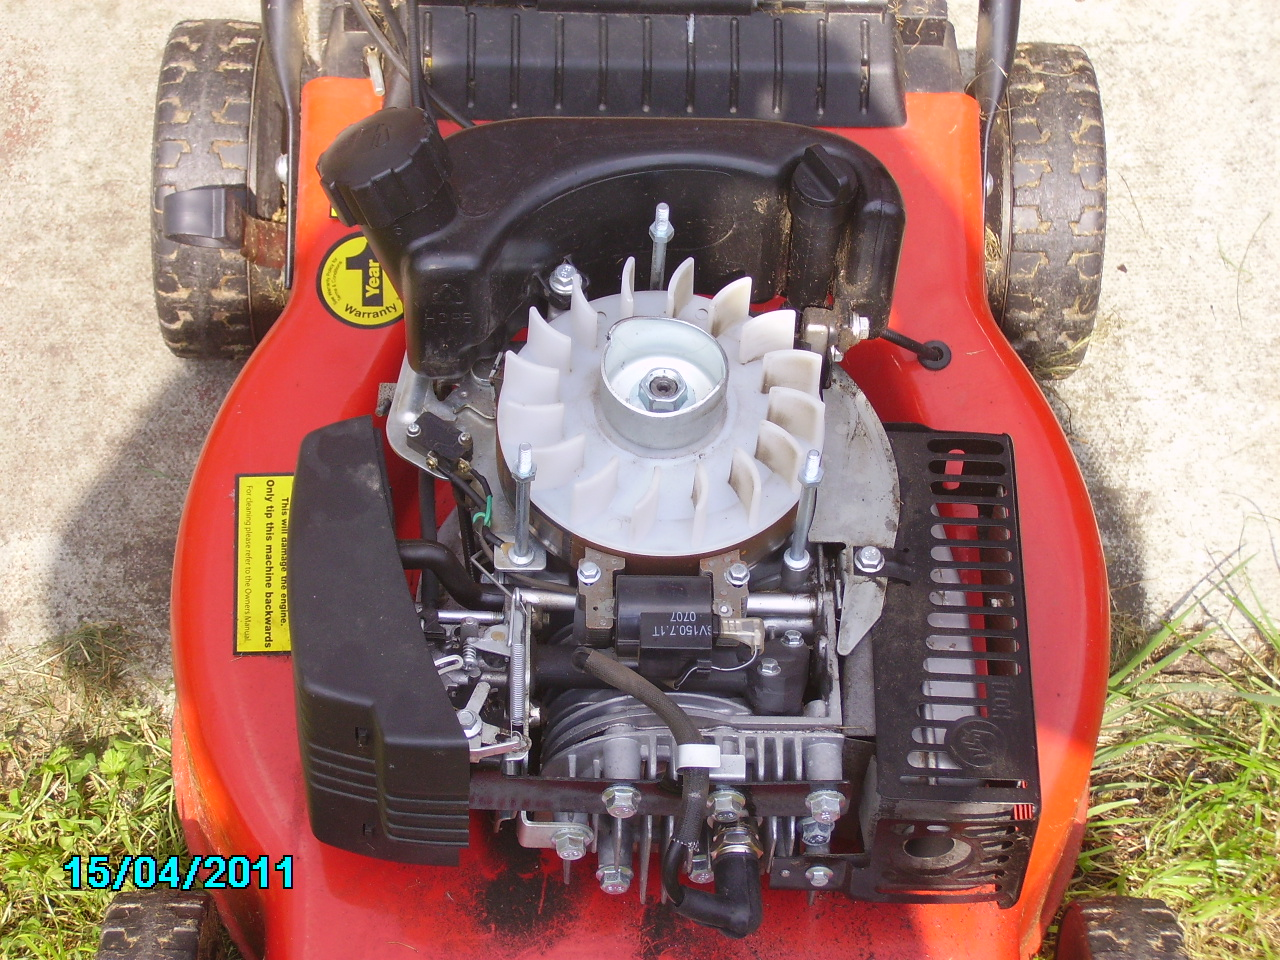 I Have A Homelite Petrol Mower Hl454hp And Cannot Start It Ive Lawn Wiring Diagram Graphic